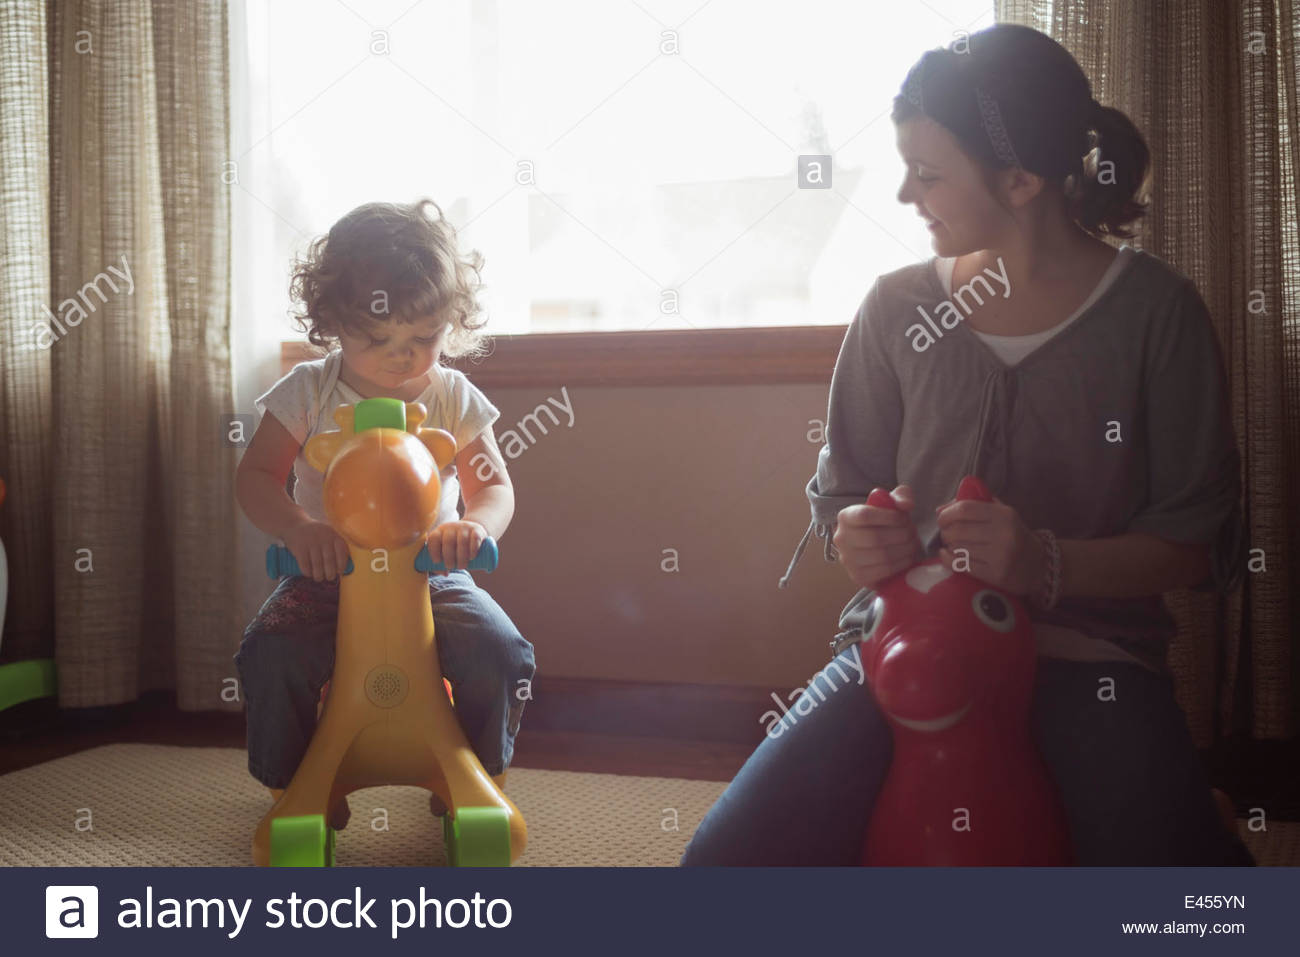 Older sister playing with younger sister - Stock Image